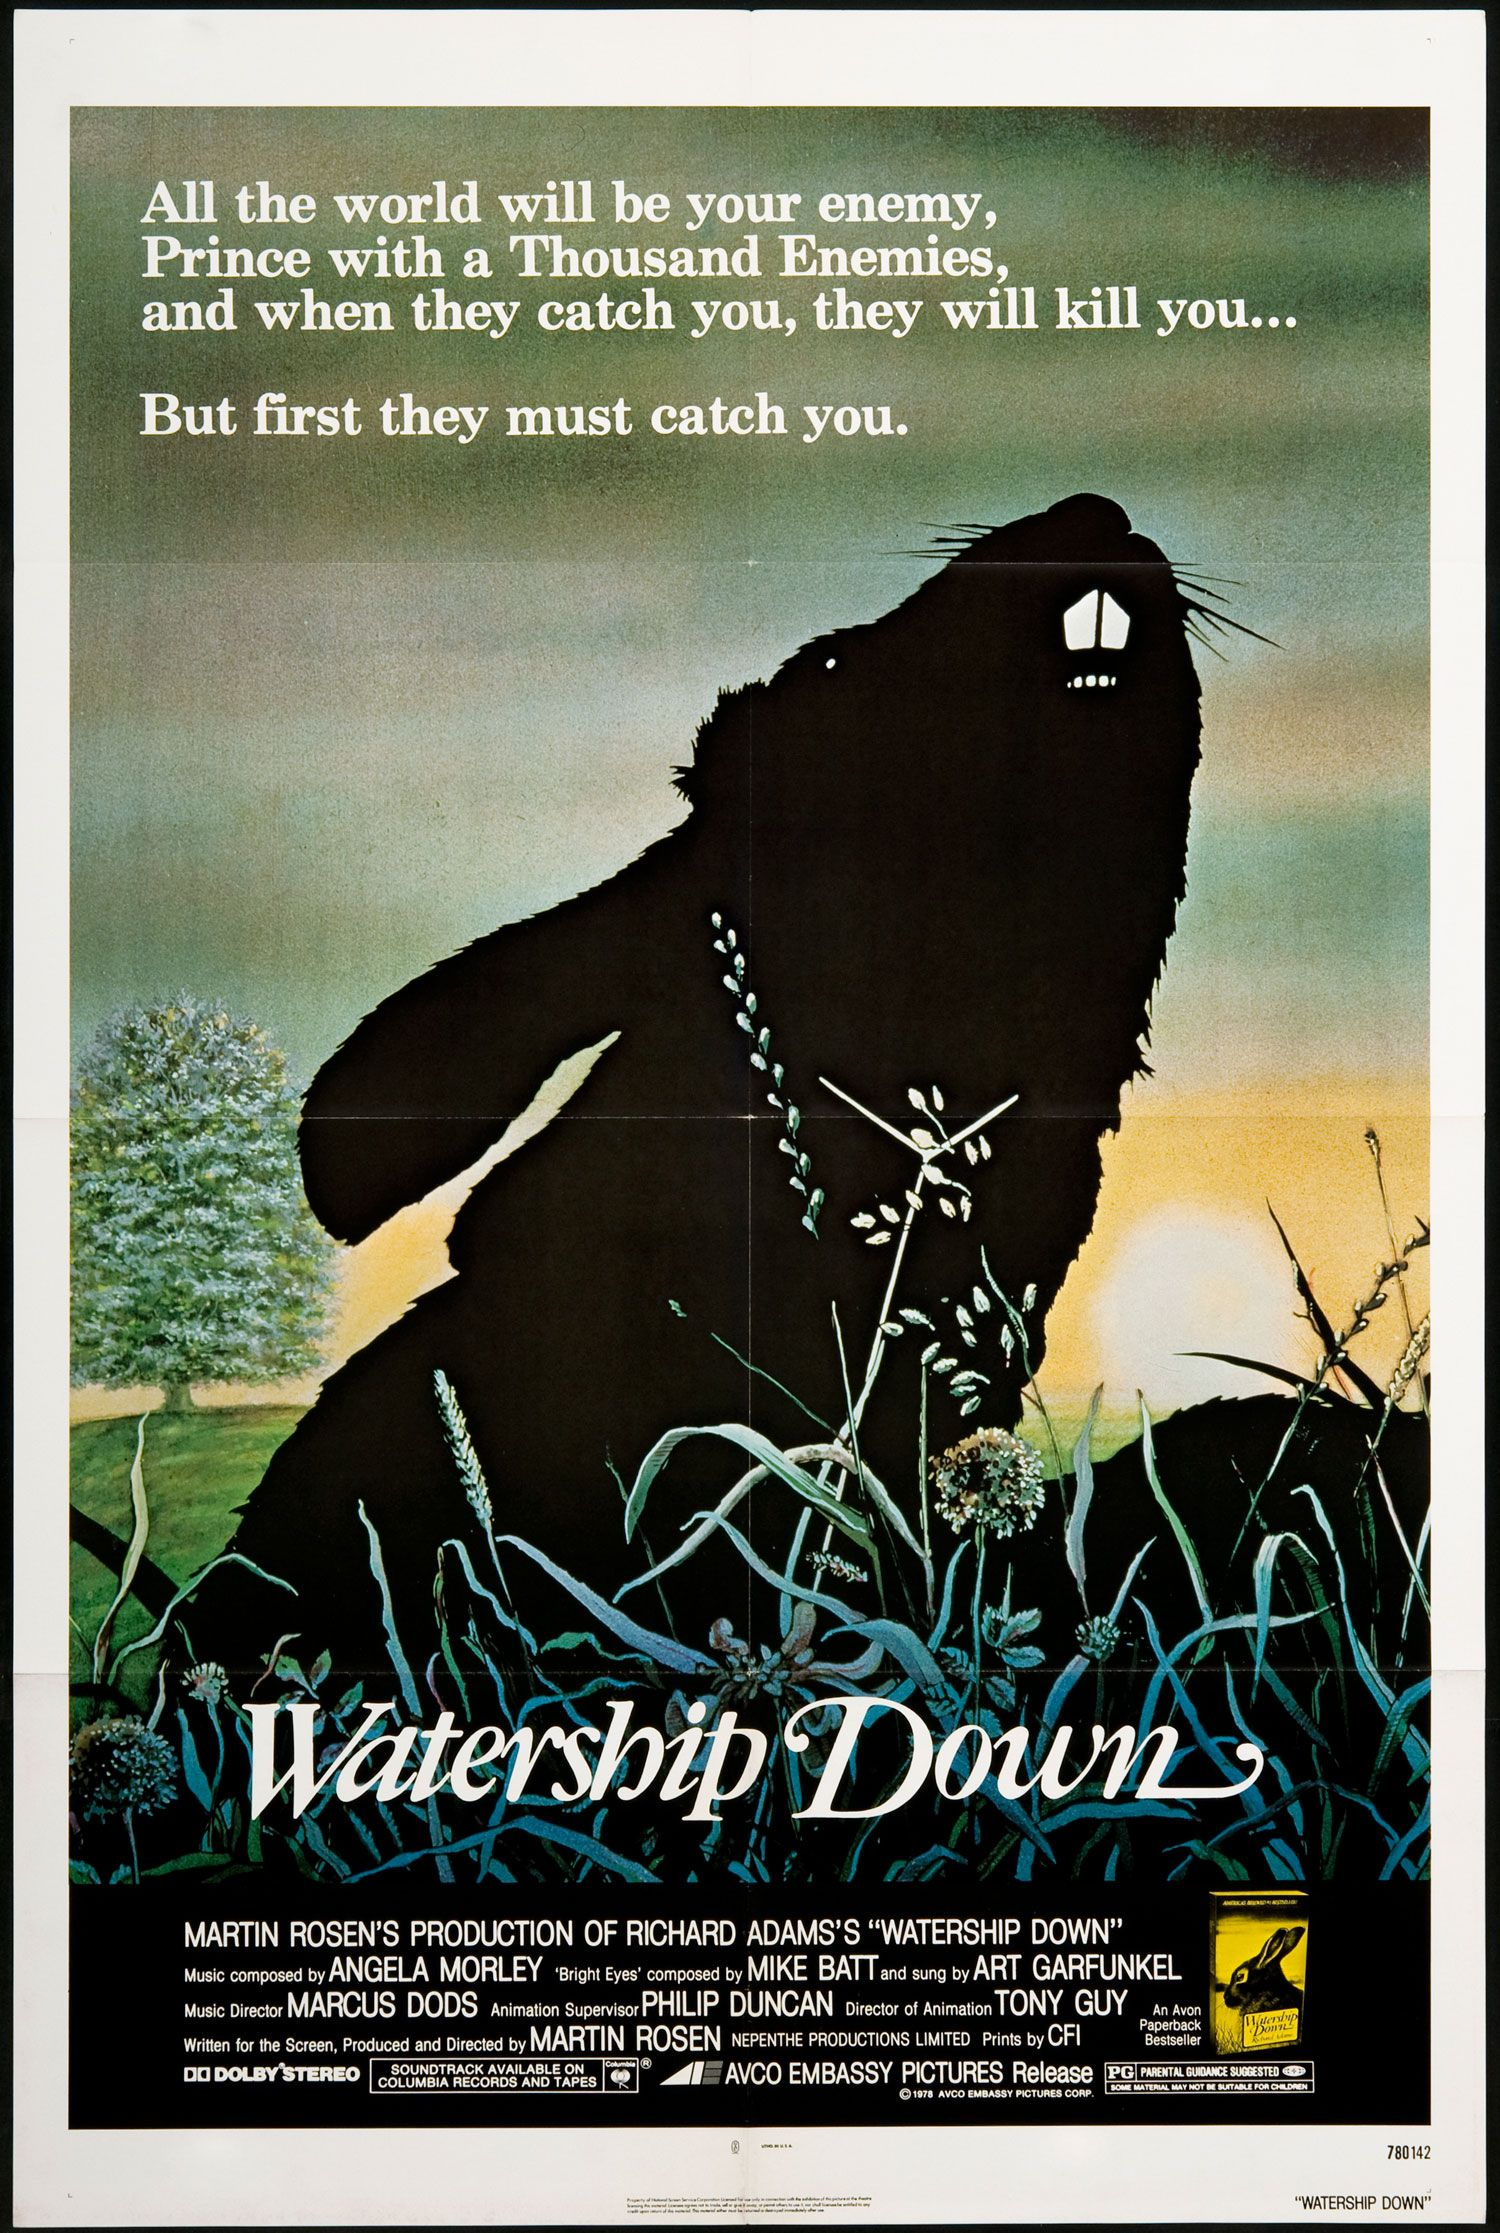 Poster design near me - Watership Down 1978 I Actually Still Have This Movie Poster 34 Odd Years